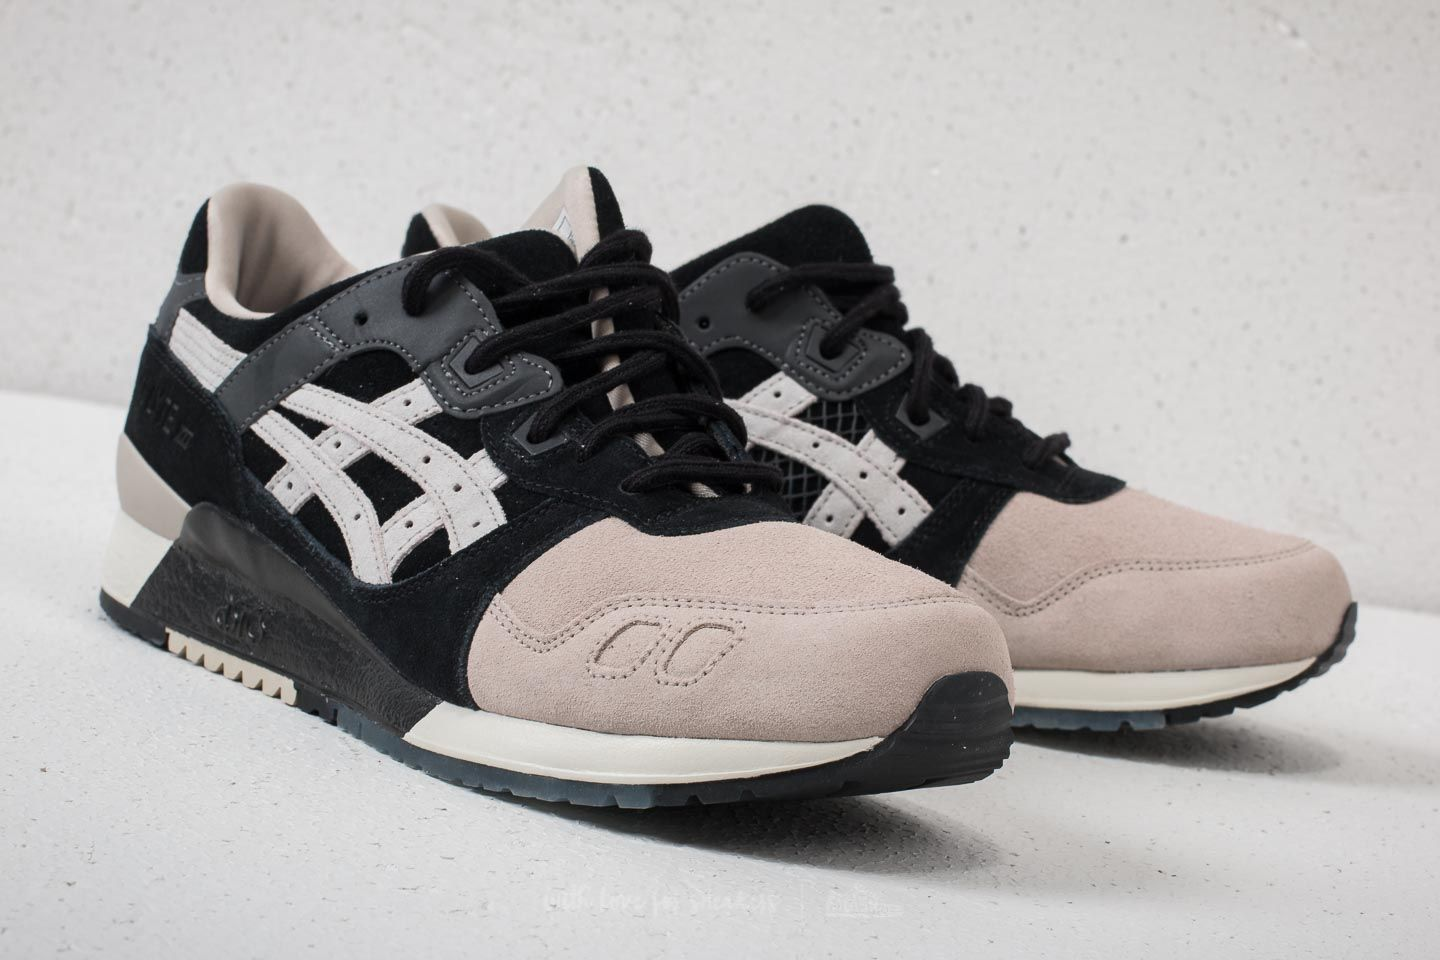 finest selection 85dfe 8ab9b Asics Tiger x Kicks Lab Gel-Lyte III Black/ Cool Grey | Footshop